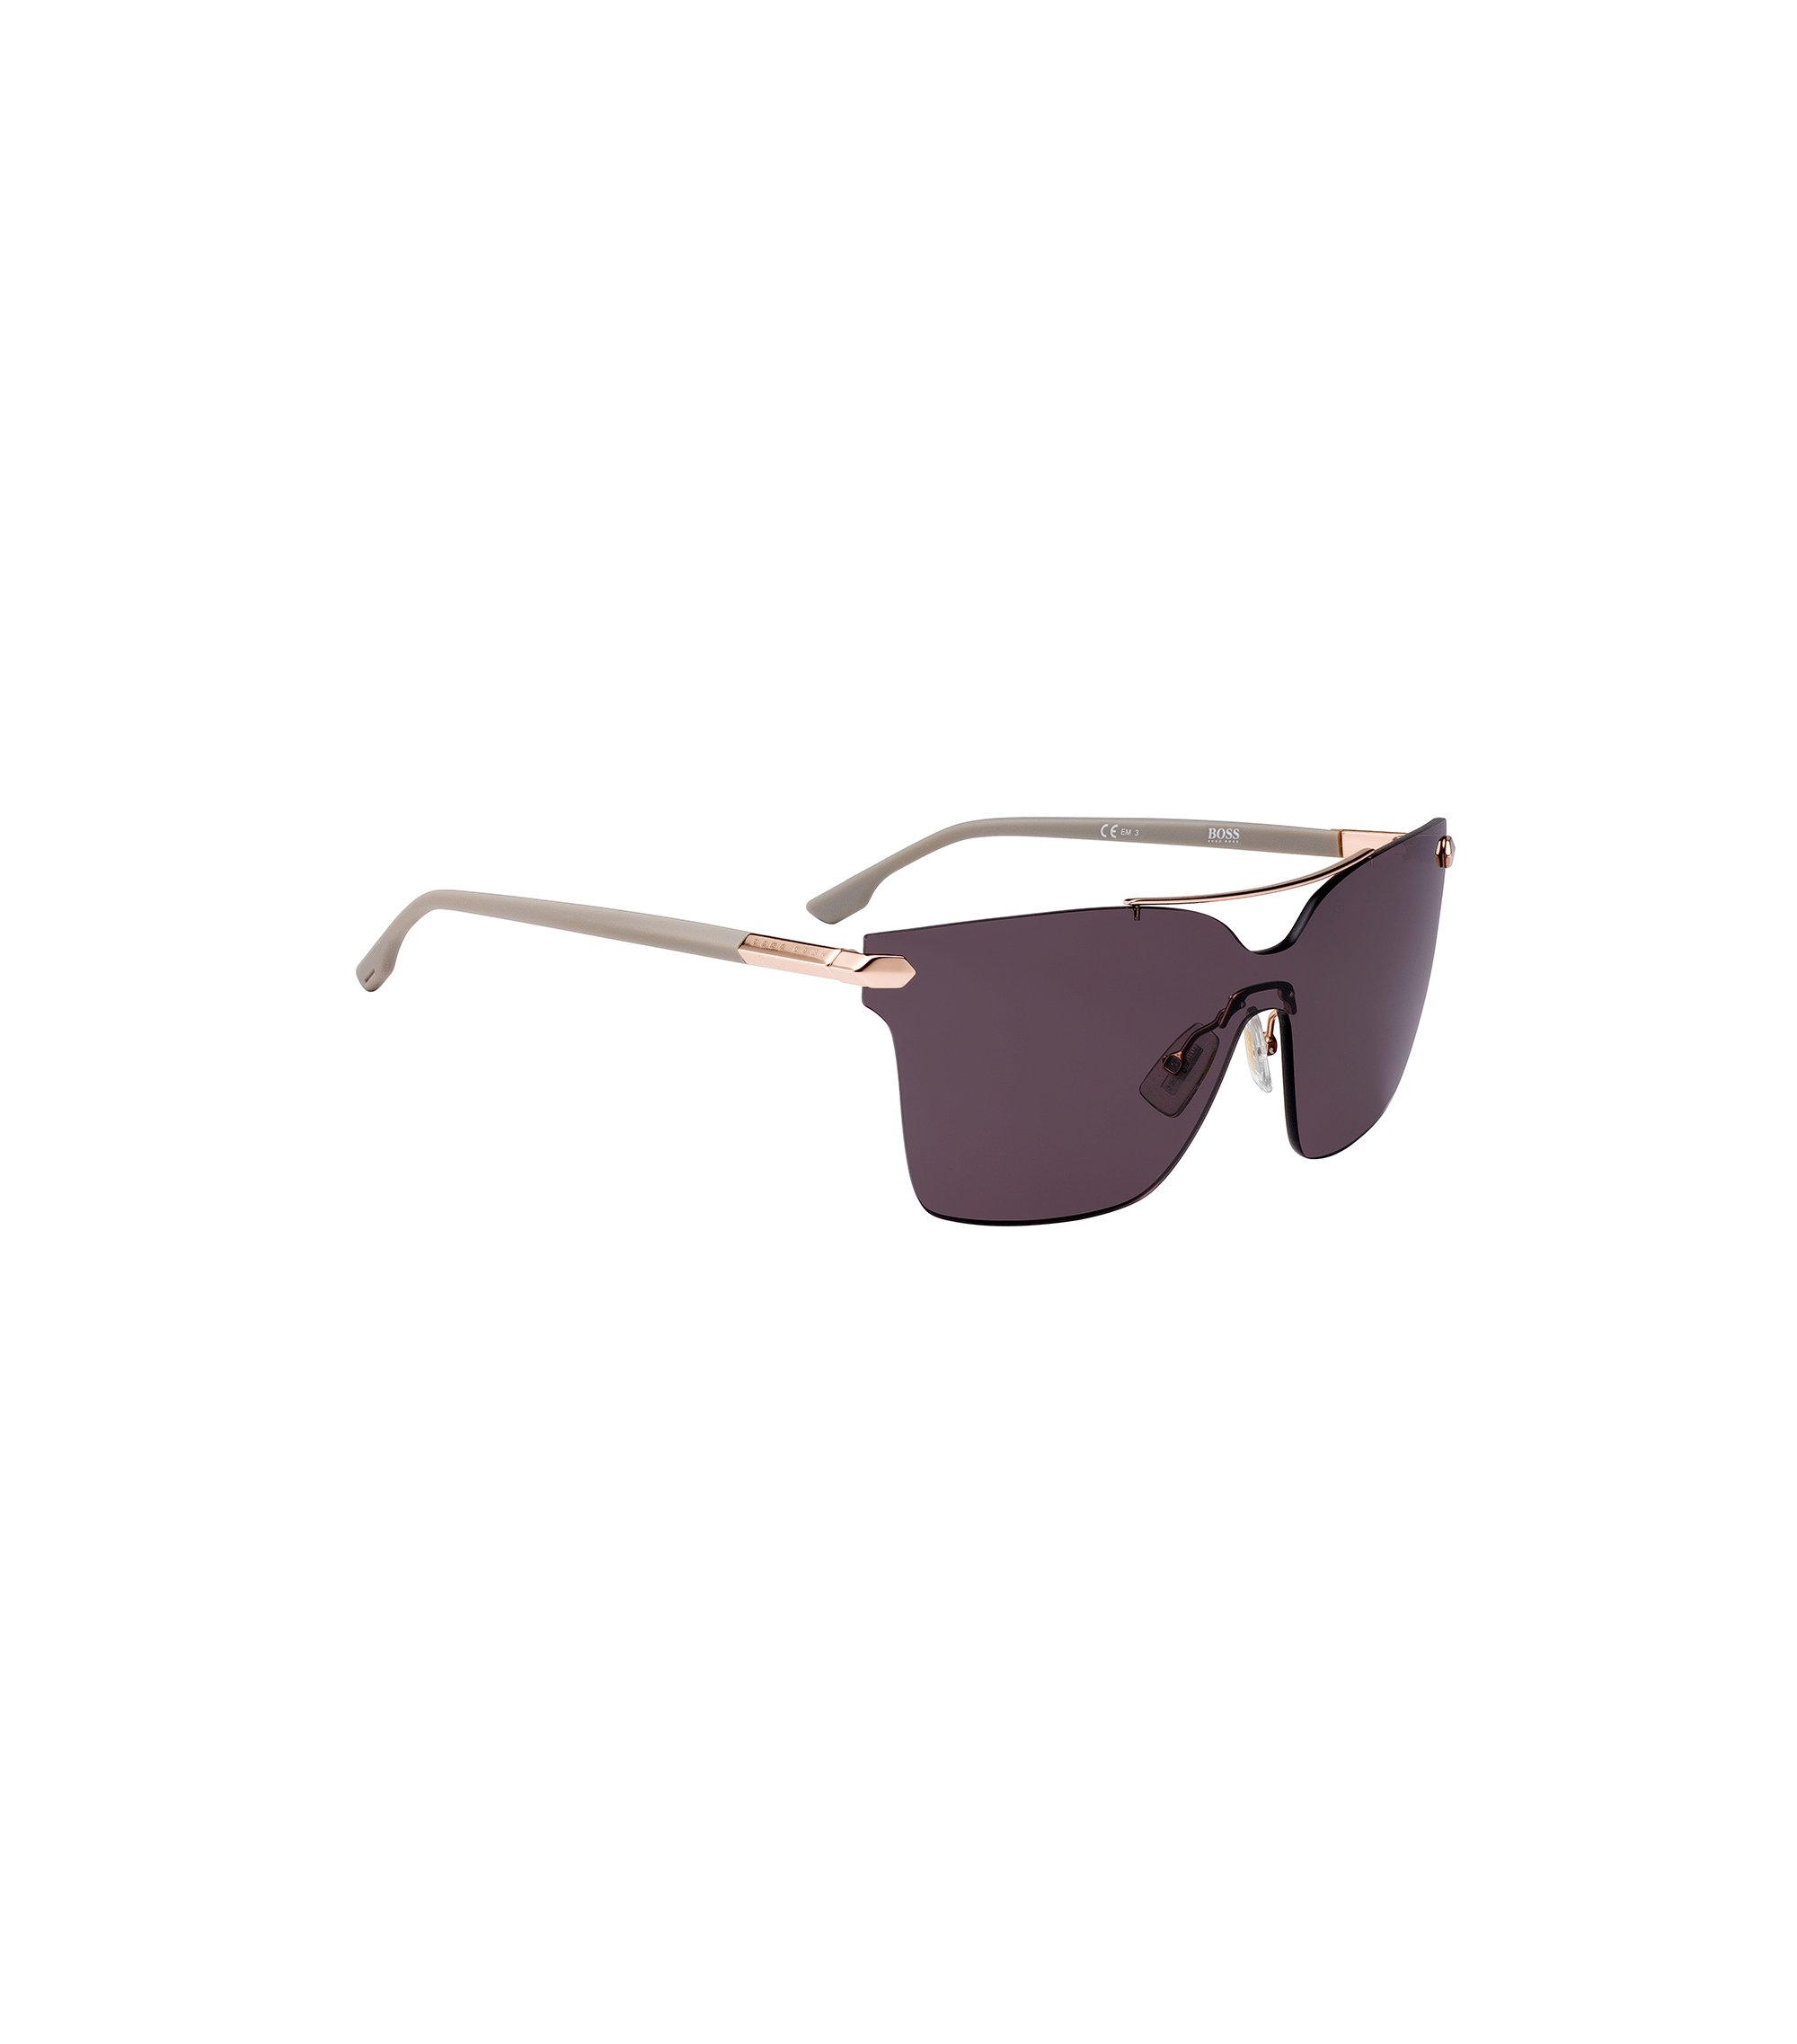 Shield sunglasses with riveted hinges, Assorted-Pre-Pack